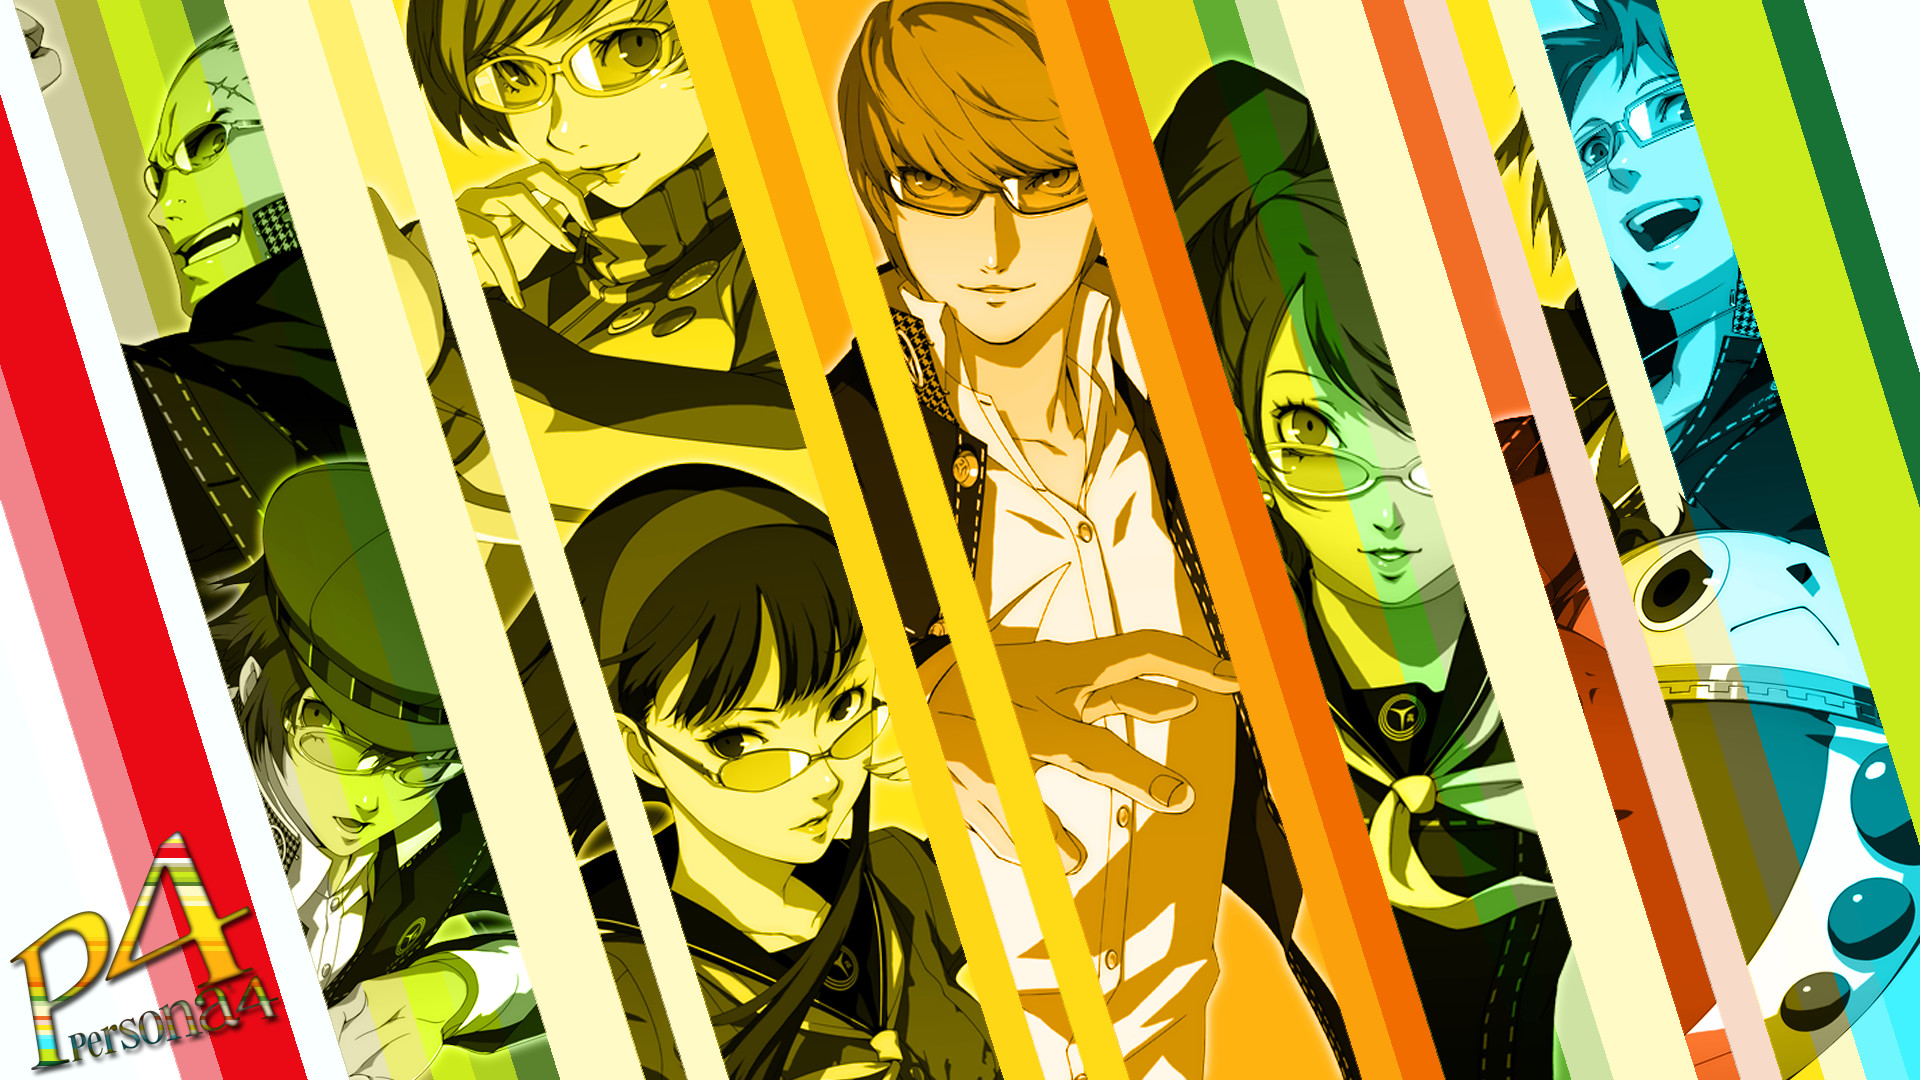 Persona 4 Golden Vita Wallpaper Wallpapertag